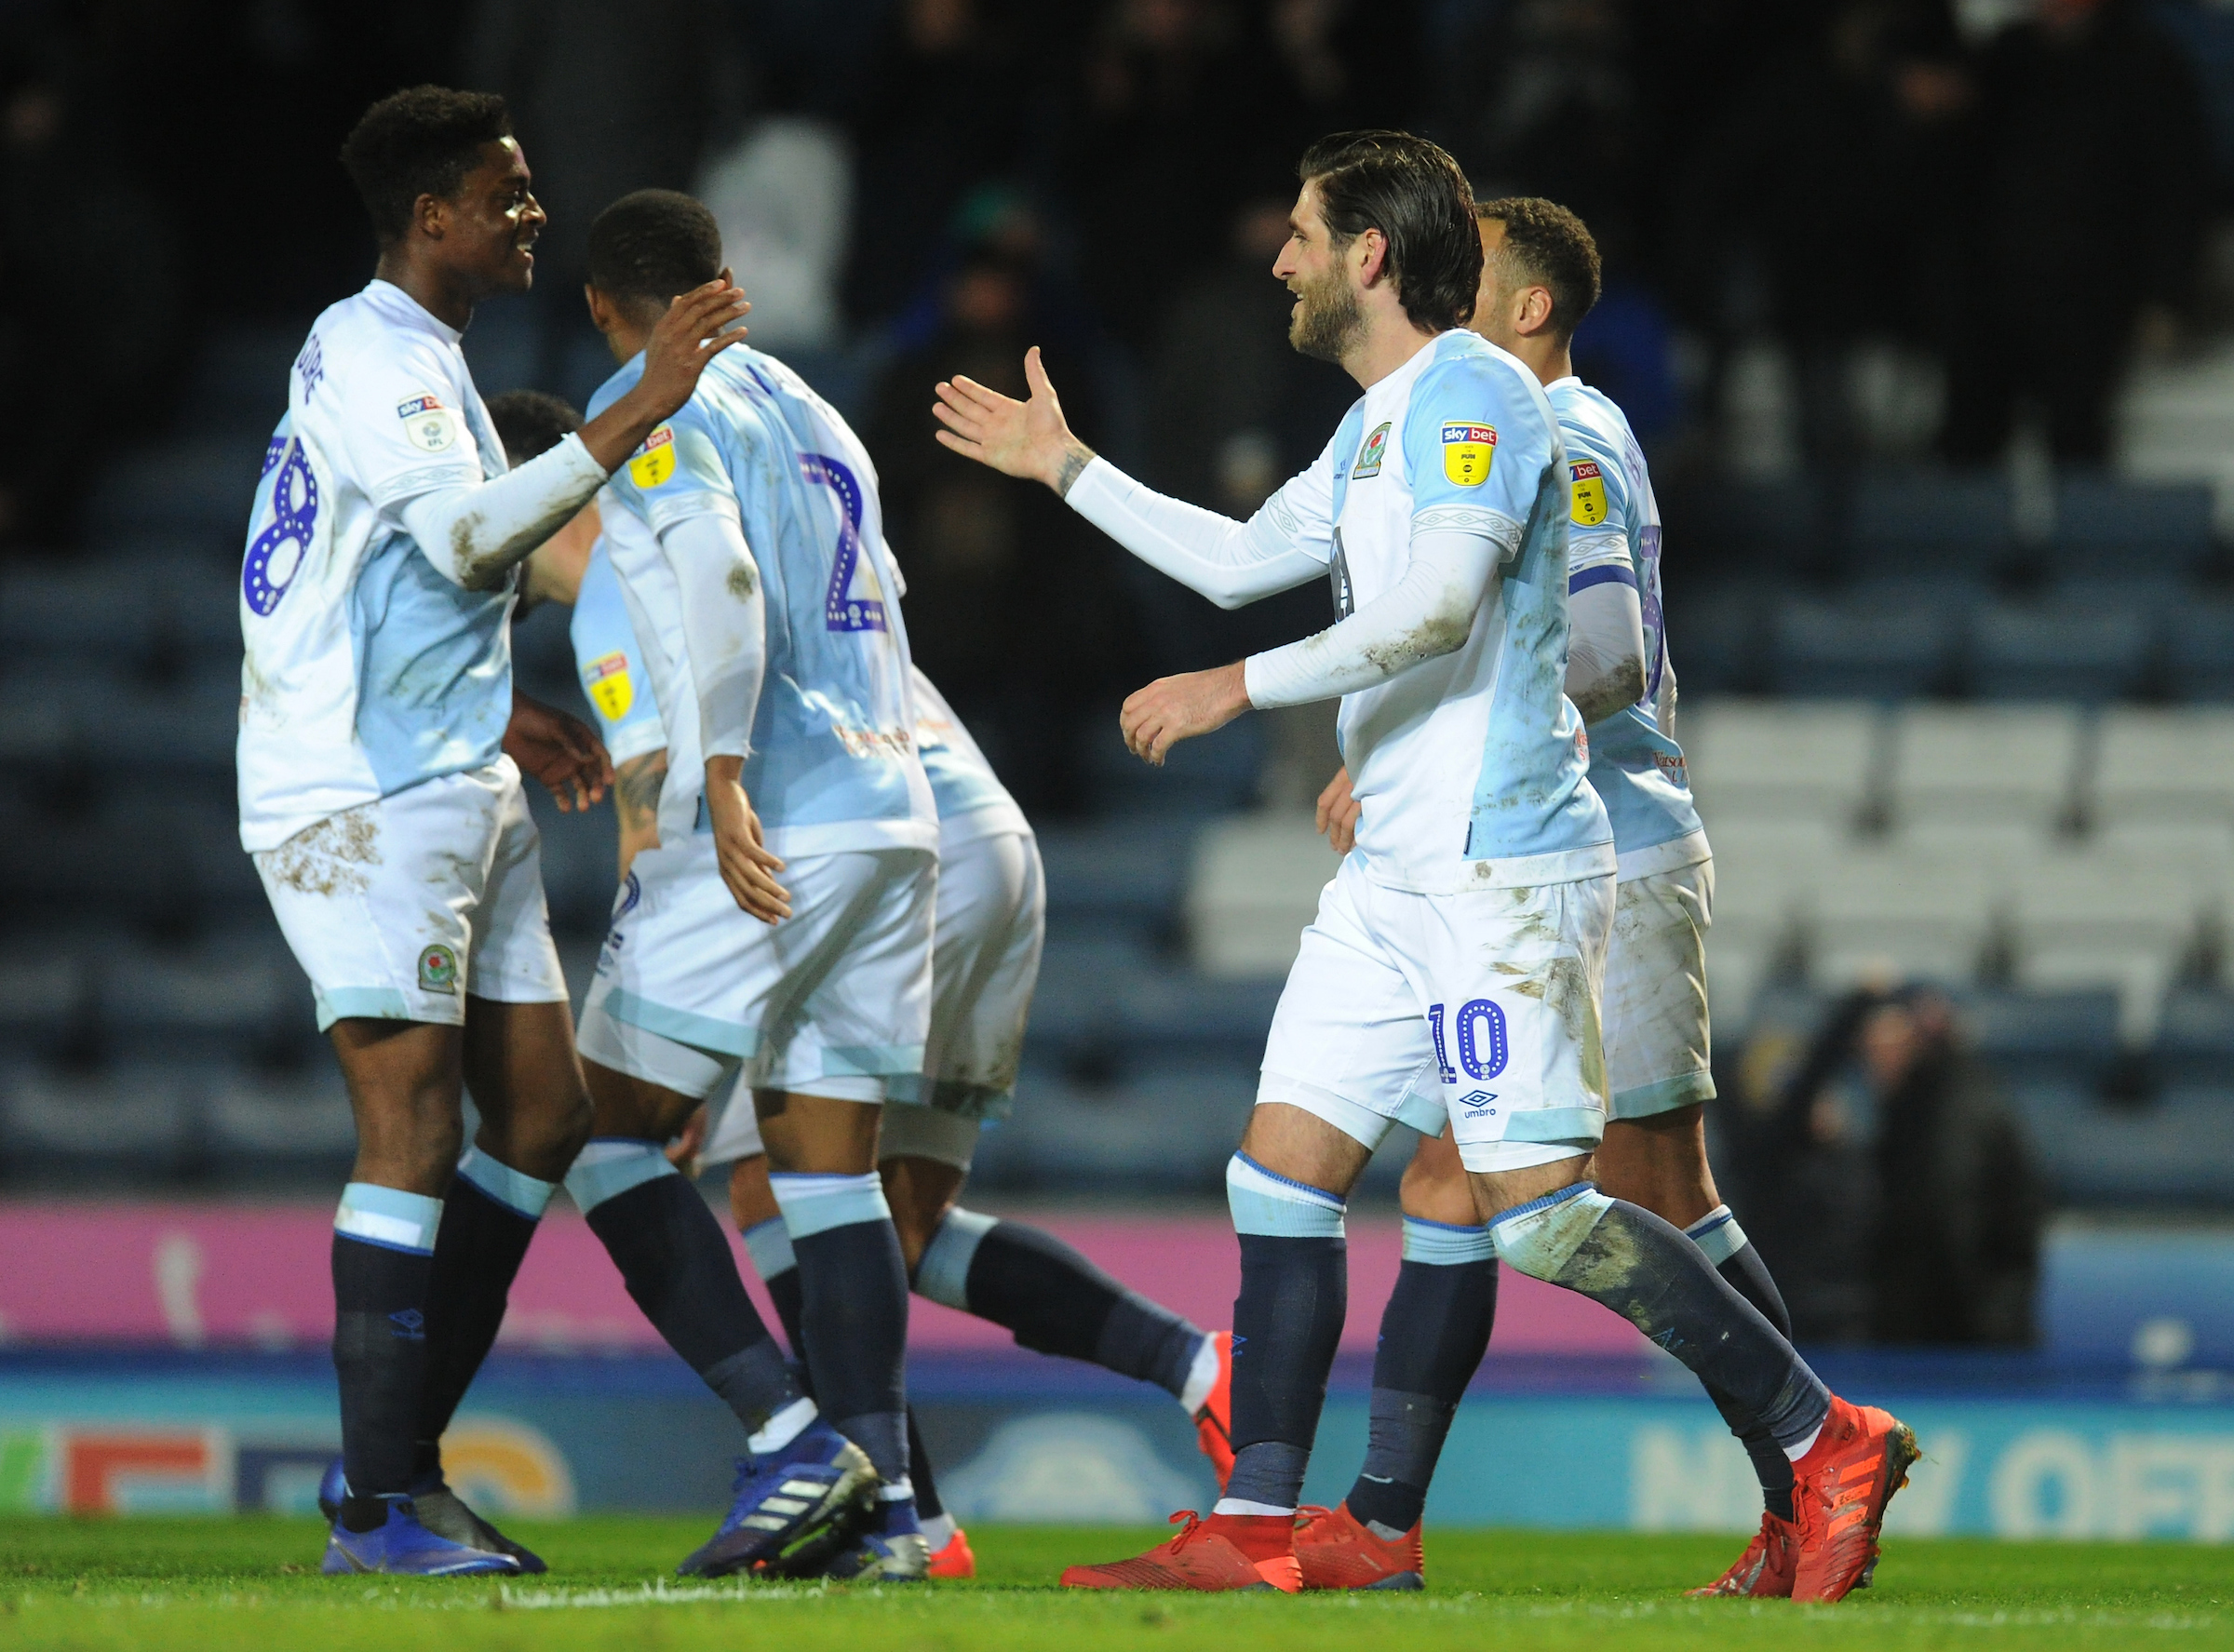 Danny Graham and Tyler Magloire celebrate during Rovers' win over Wigan Athletic